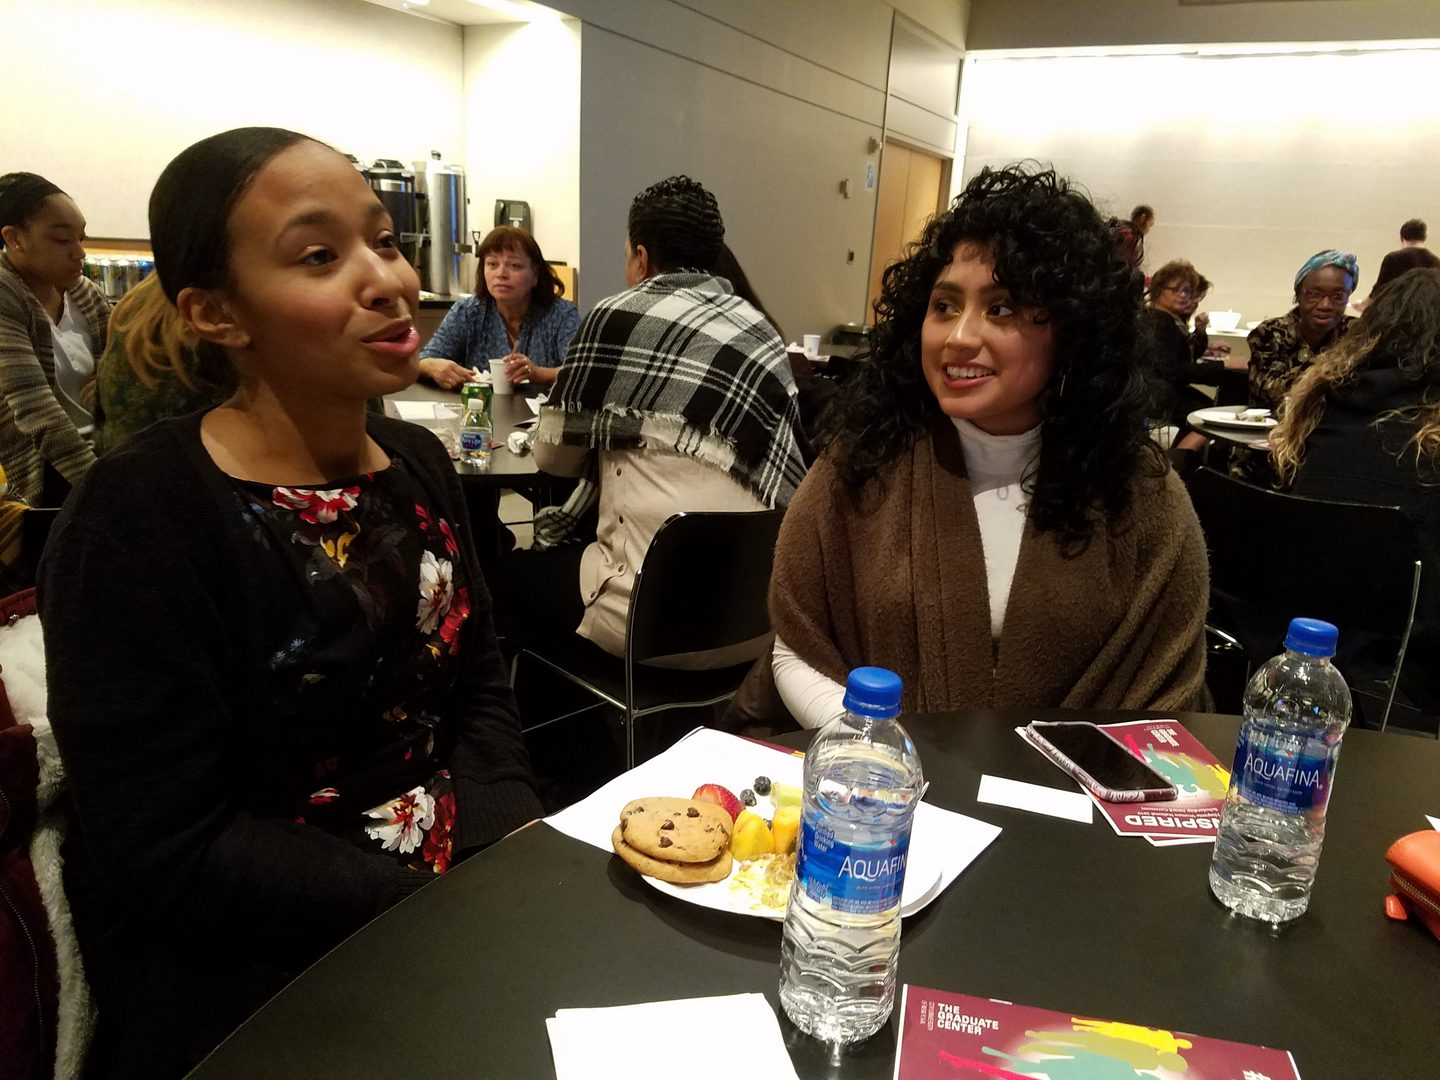 Women in table discussions